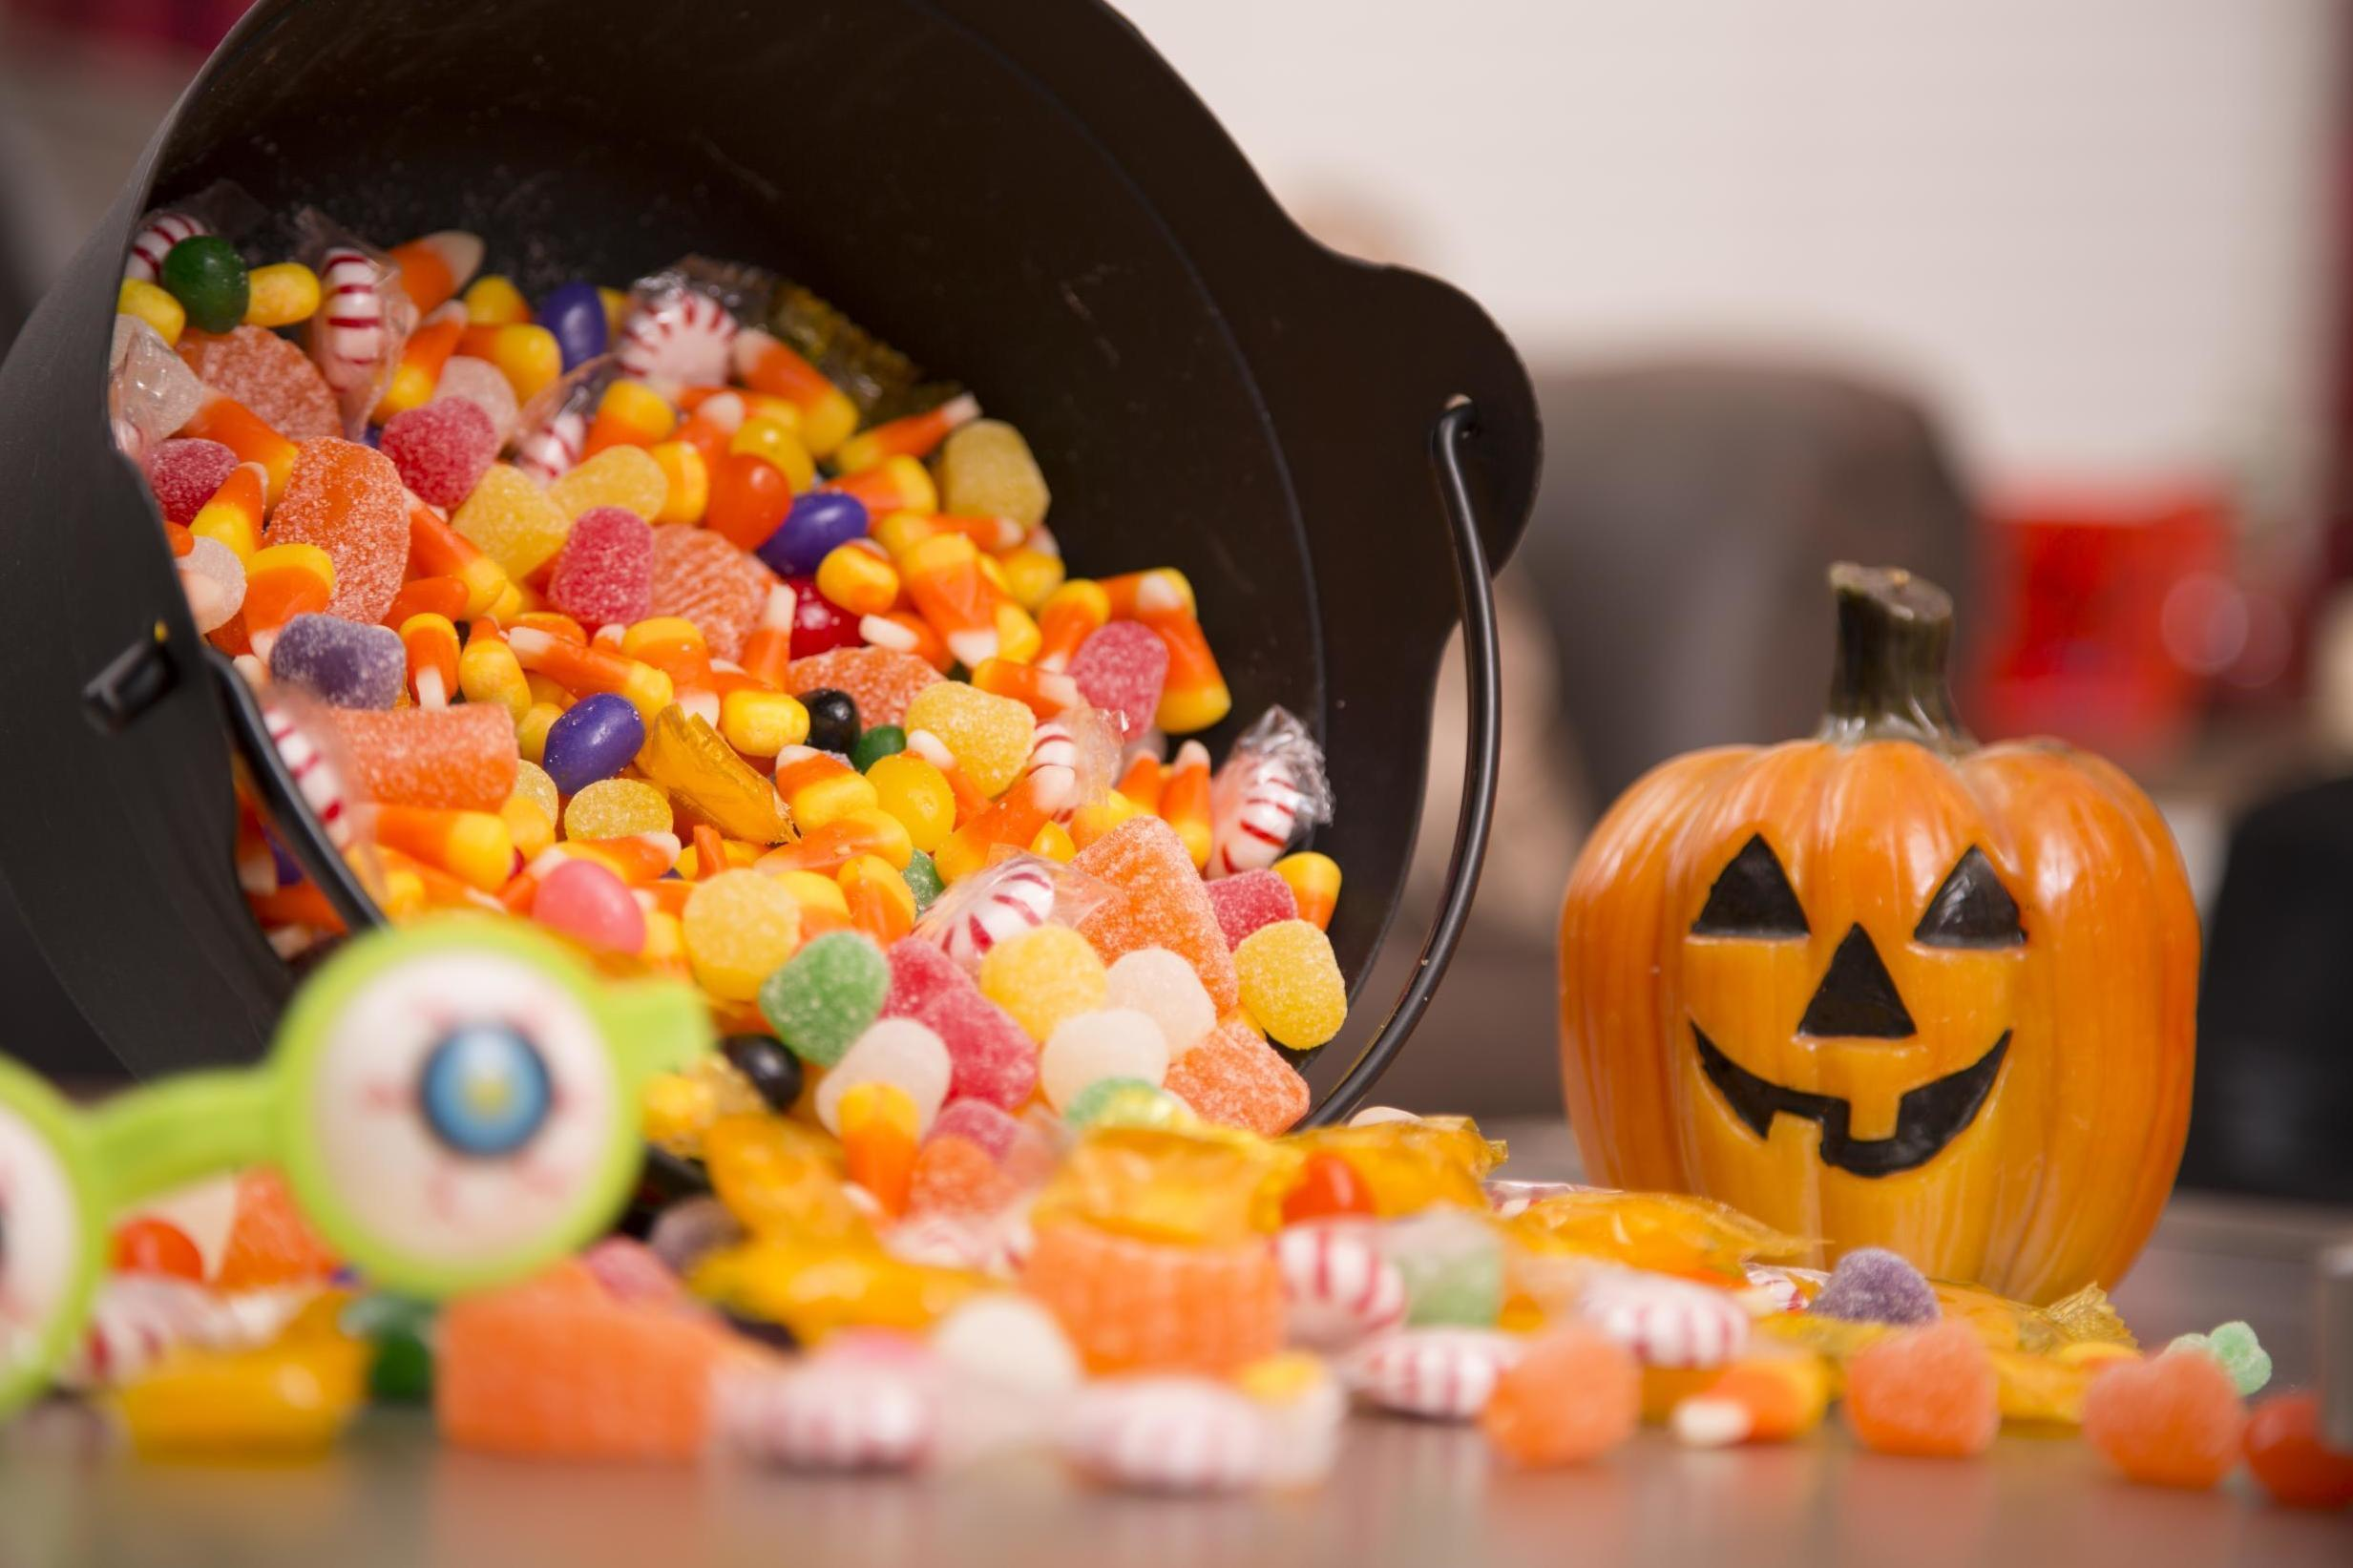 Why you should eat your Halloween candy all at once, according to dentists